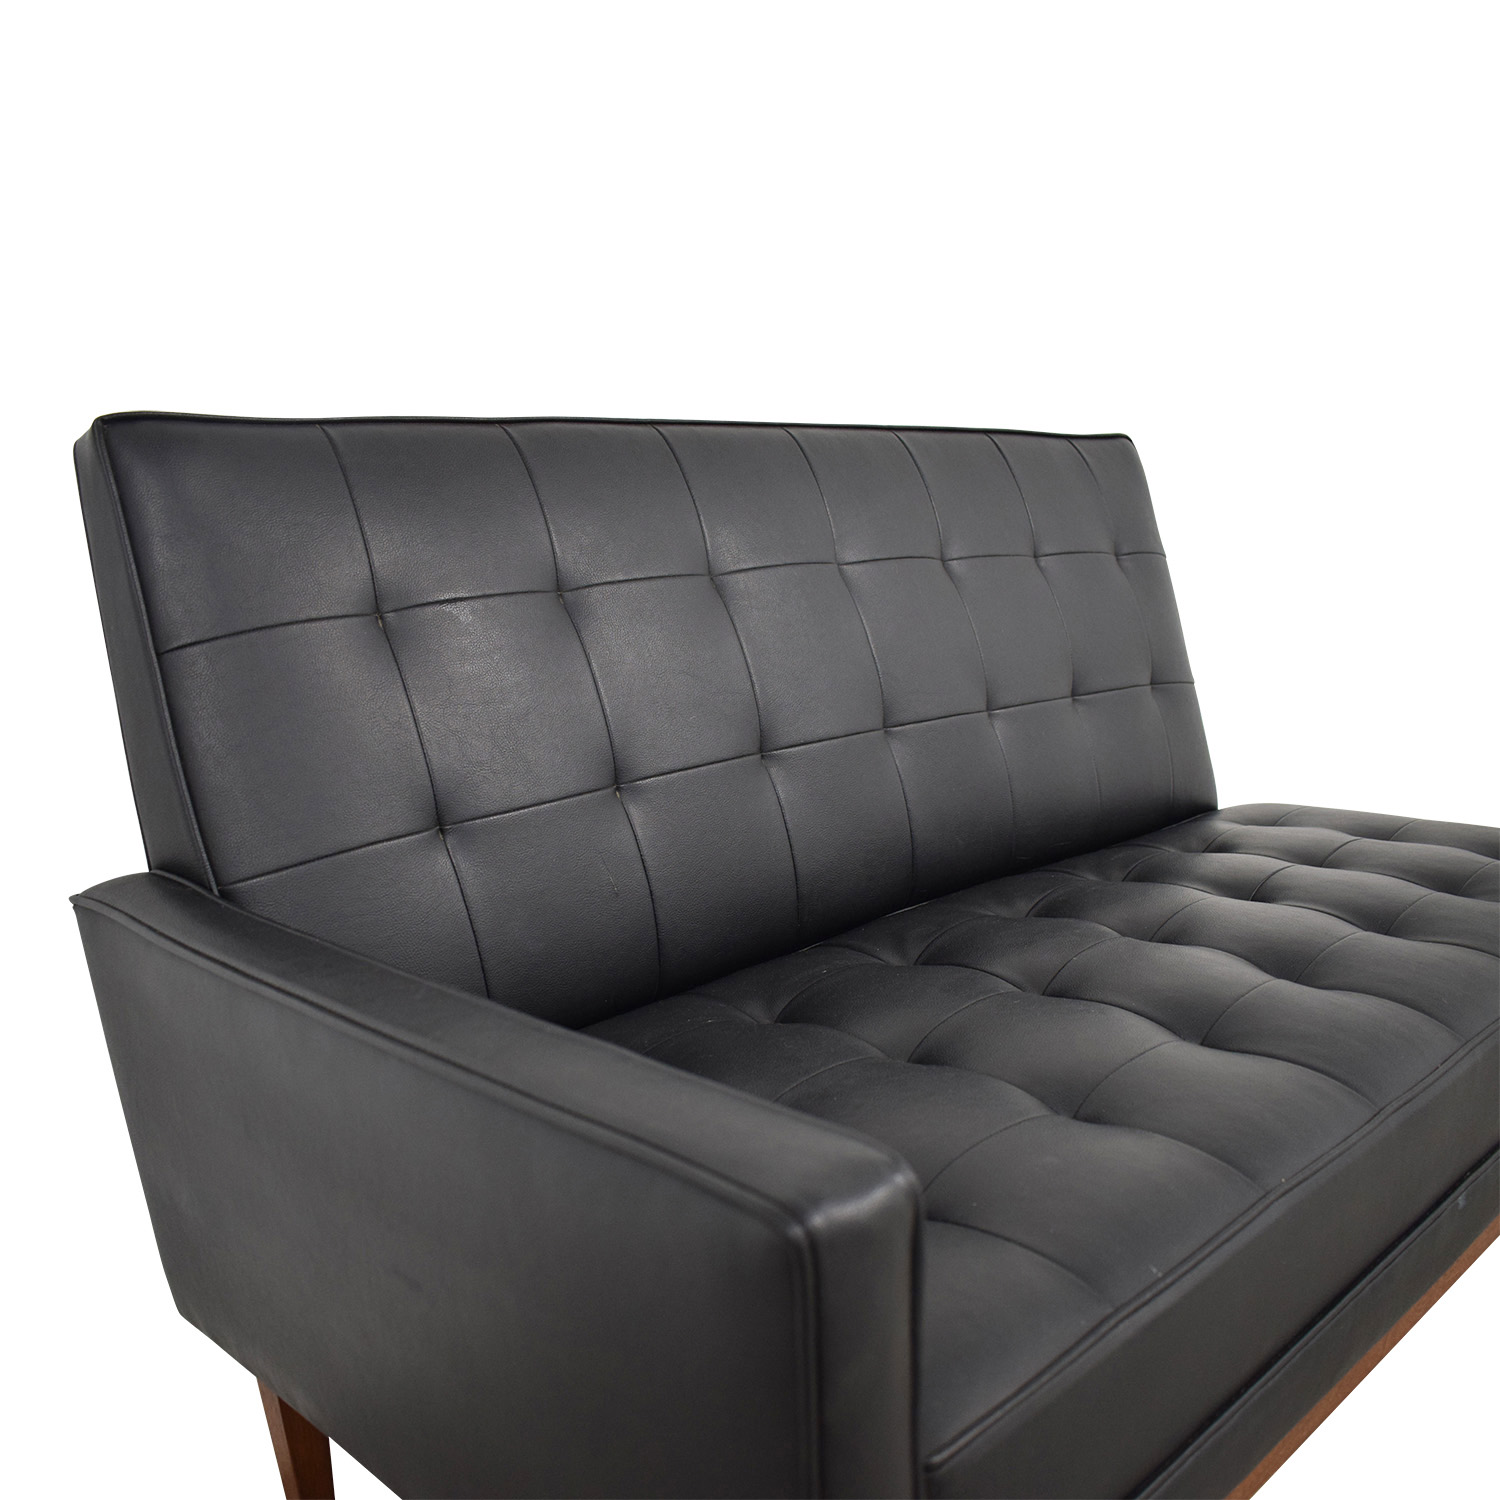 shop Directional Furniture Directional Furniture Black Tufted Leather Loveseat online